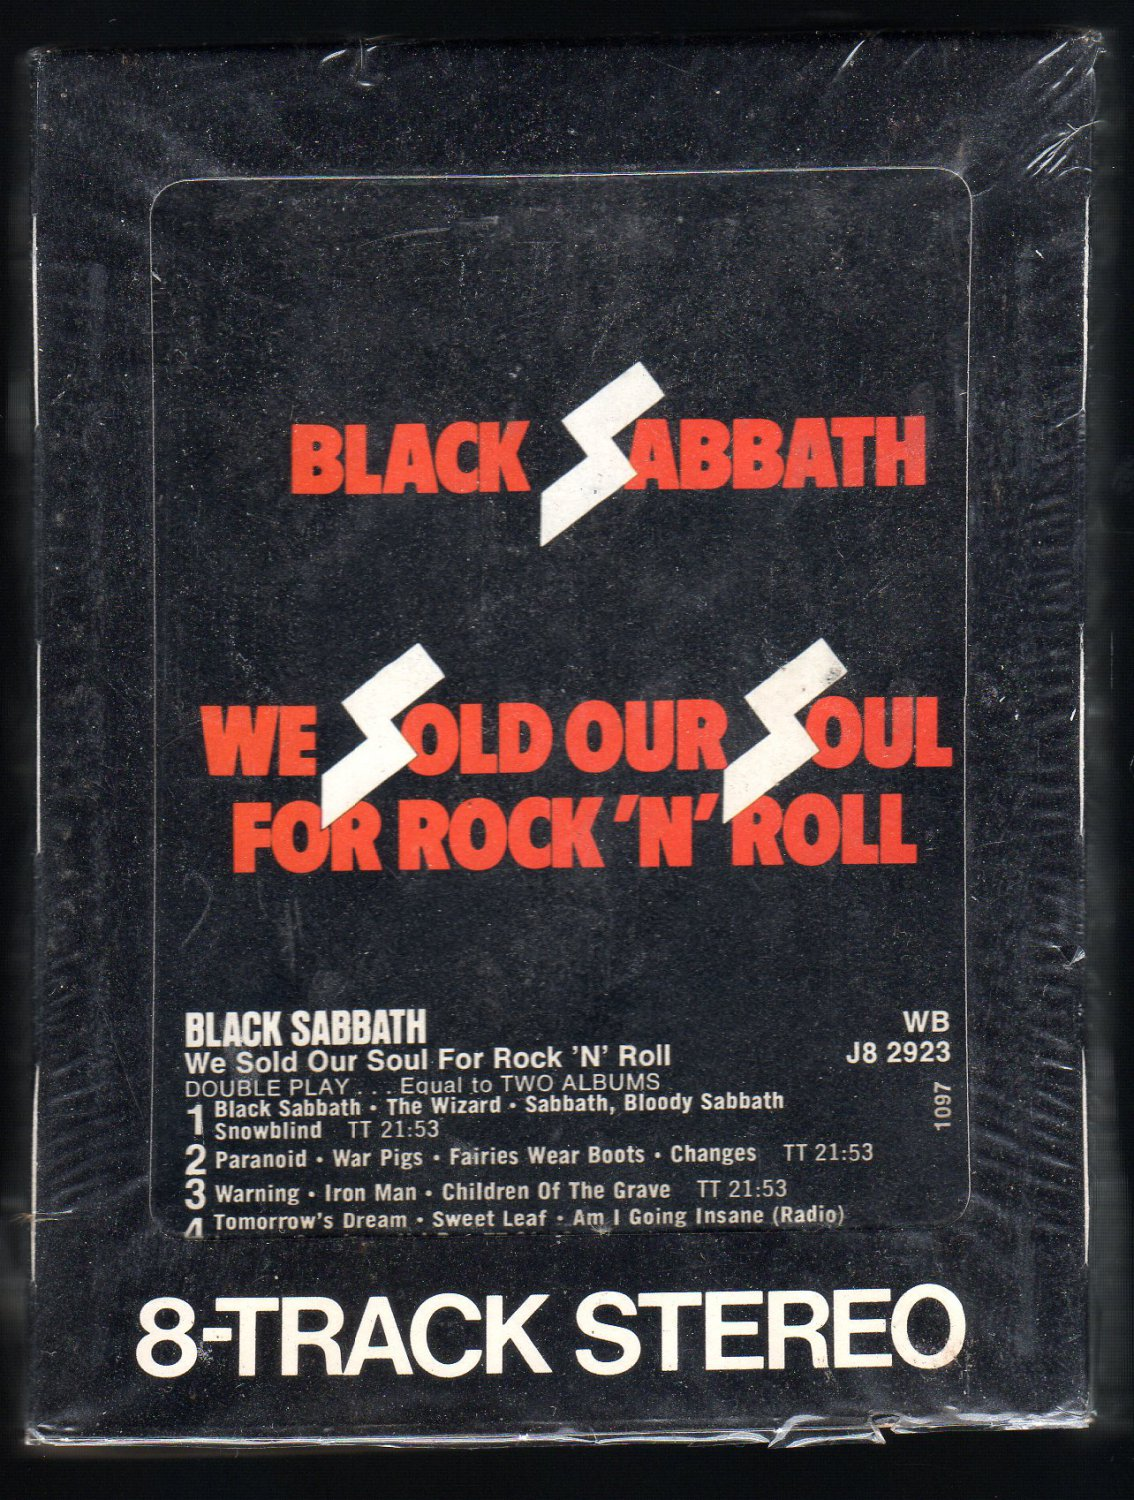 Black Sabbath - We Sold Our Soul For Rock N' Roll 1976 WB A32 8-TRACK TAPE